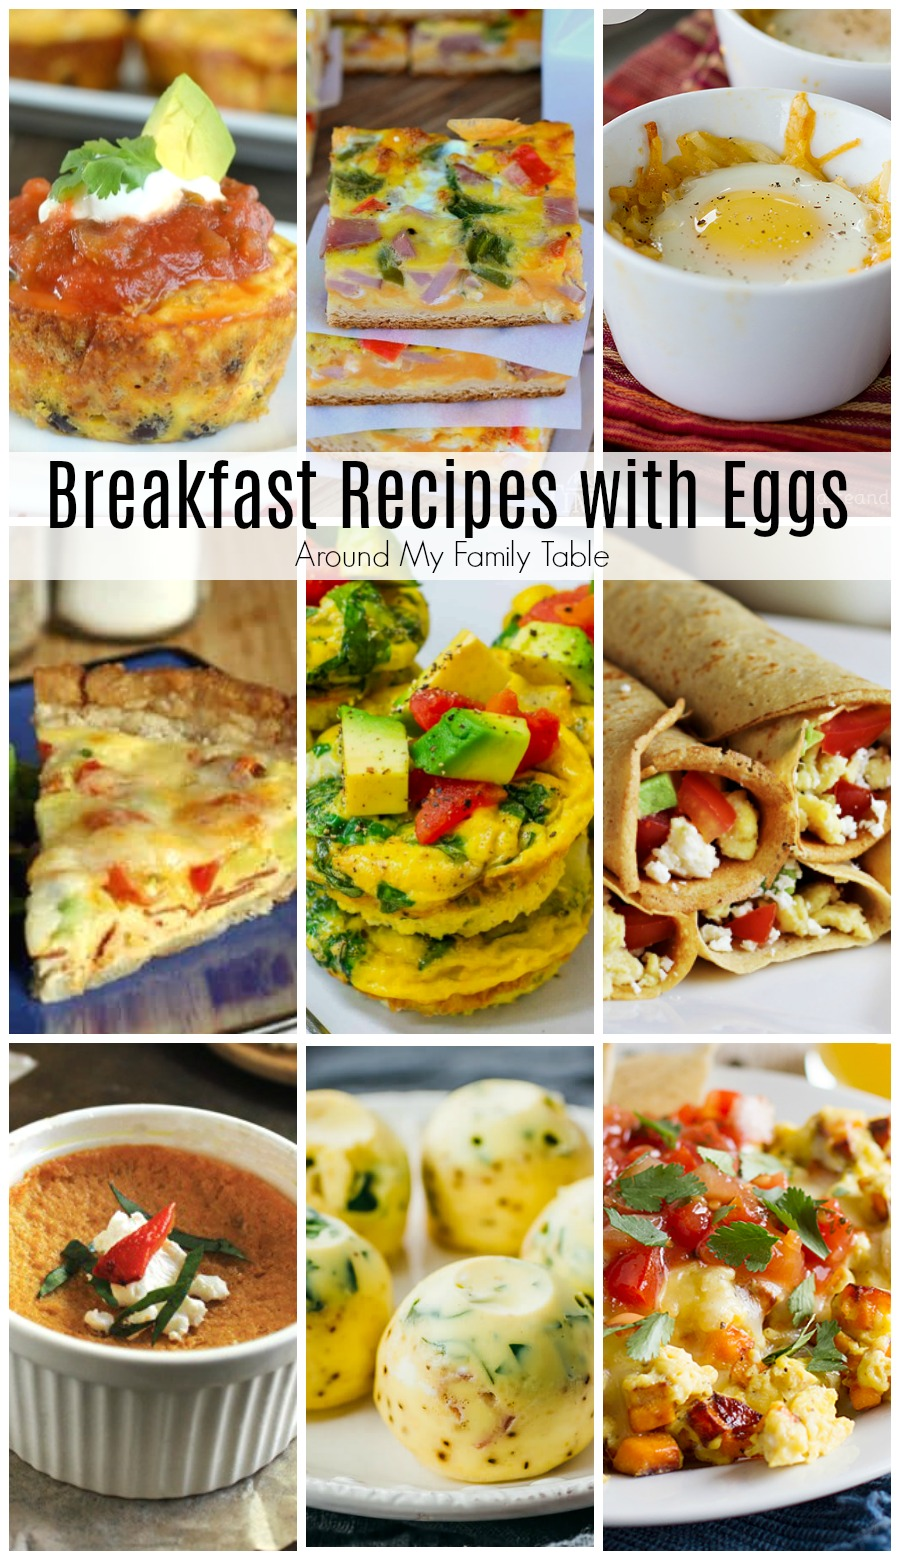 No matter how you choose to cook your eggs, these Breakfast Recipes with Eggs are an egg-cellent choice to start your day. #breakfastrecipes #eggrecipes